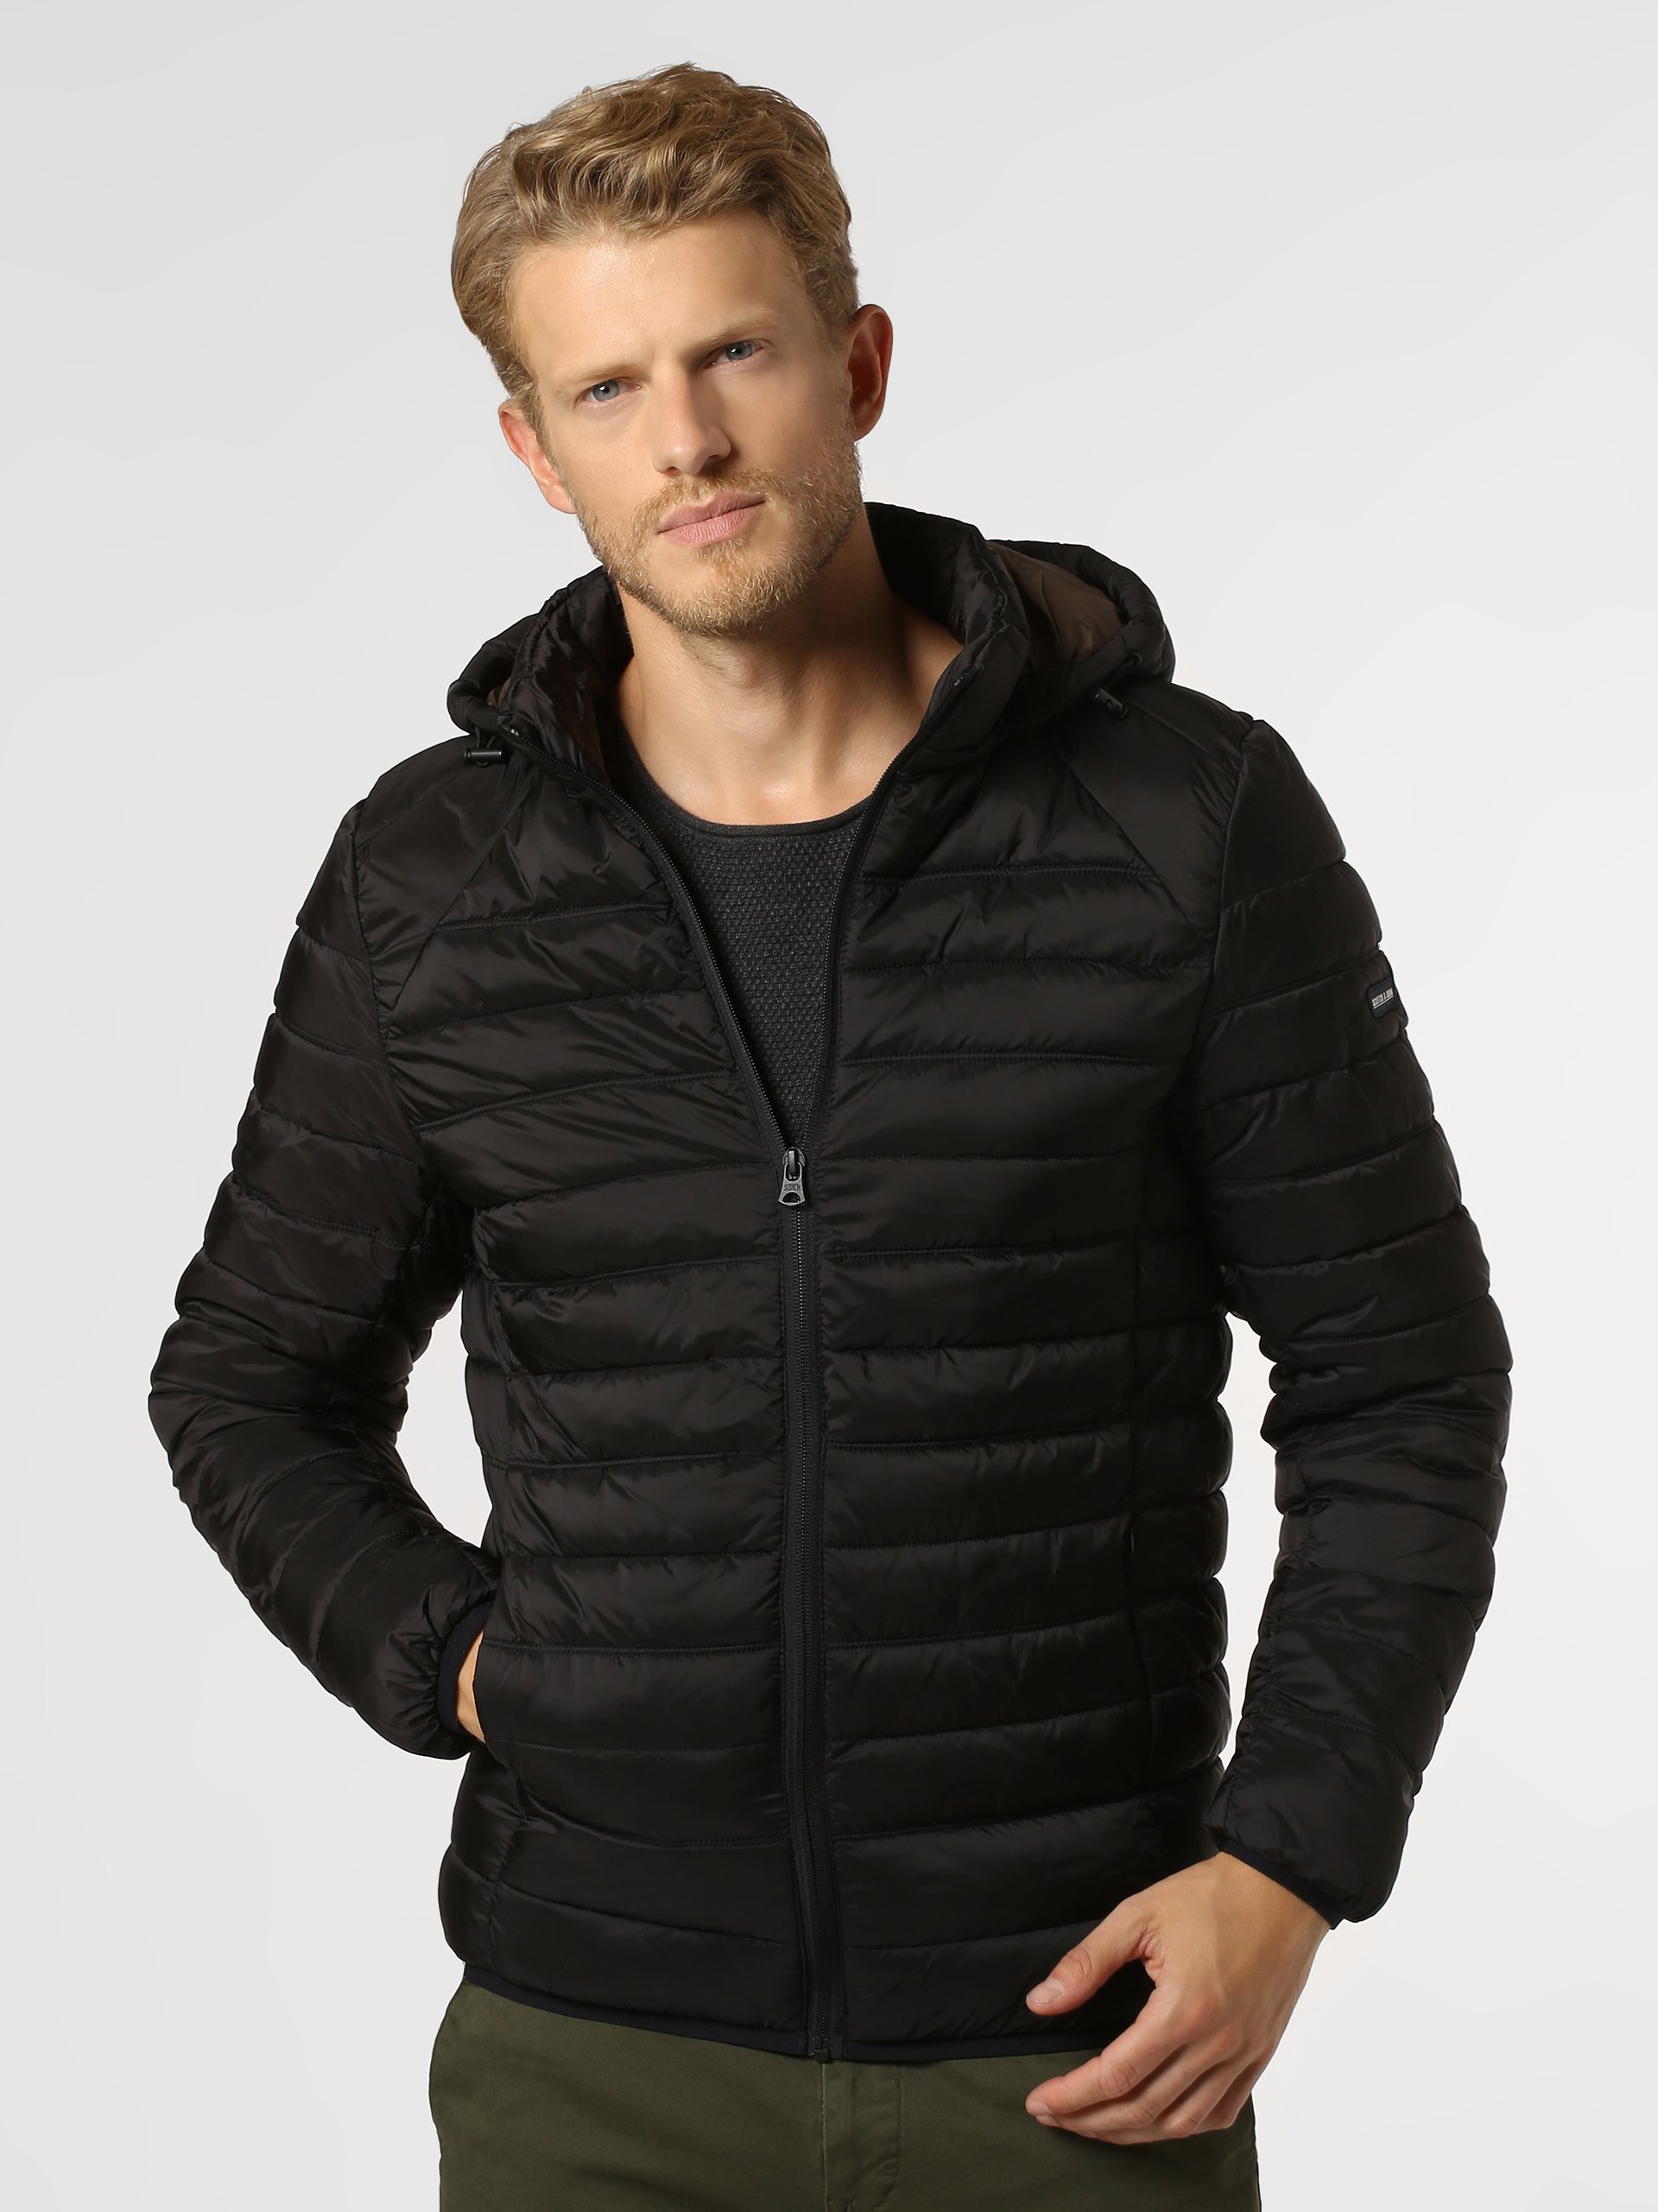 Scotch & Soda Herren Steppjacke